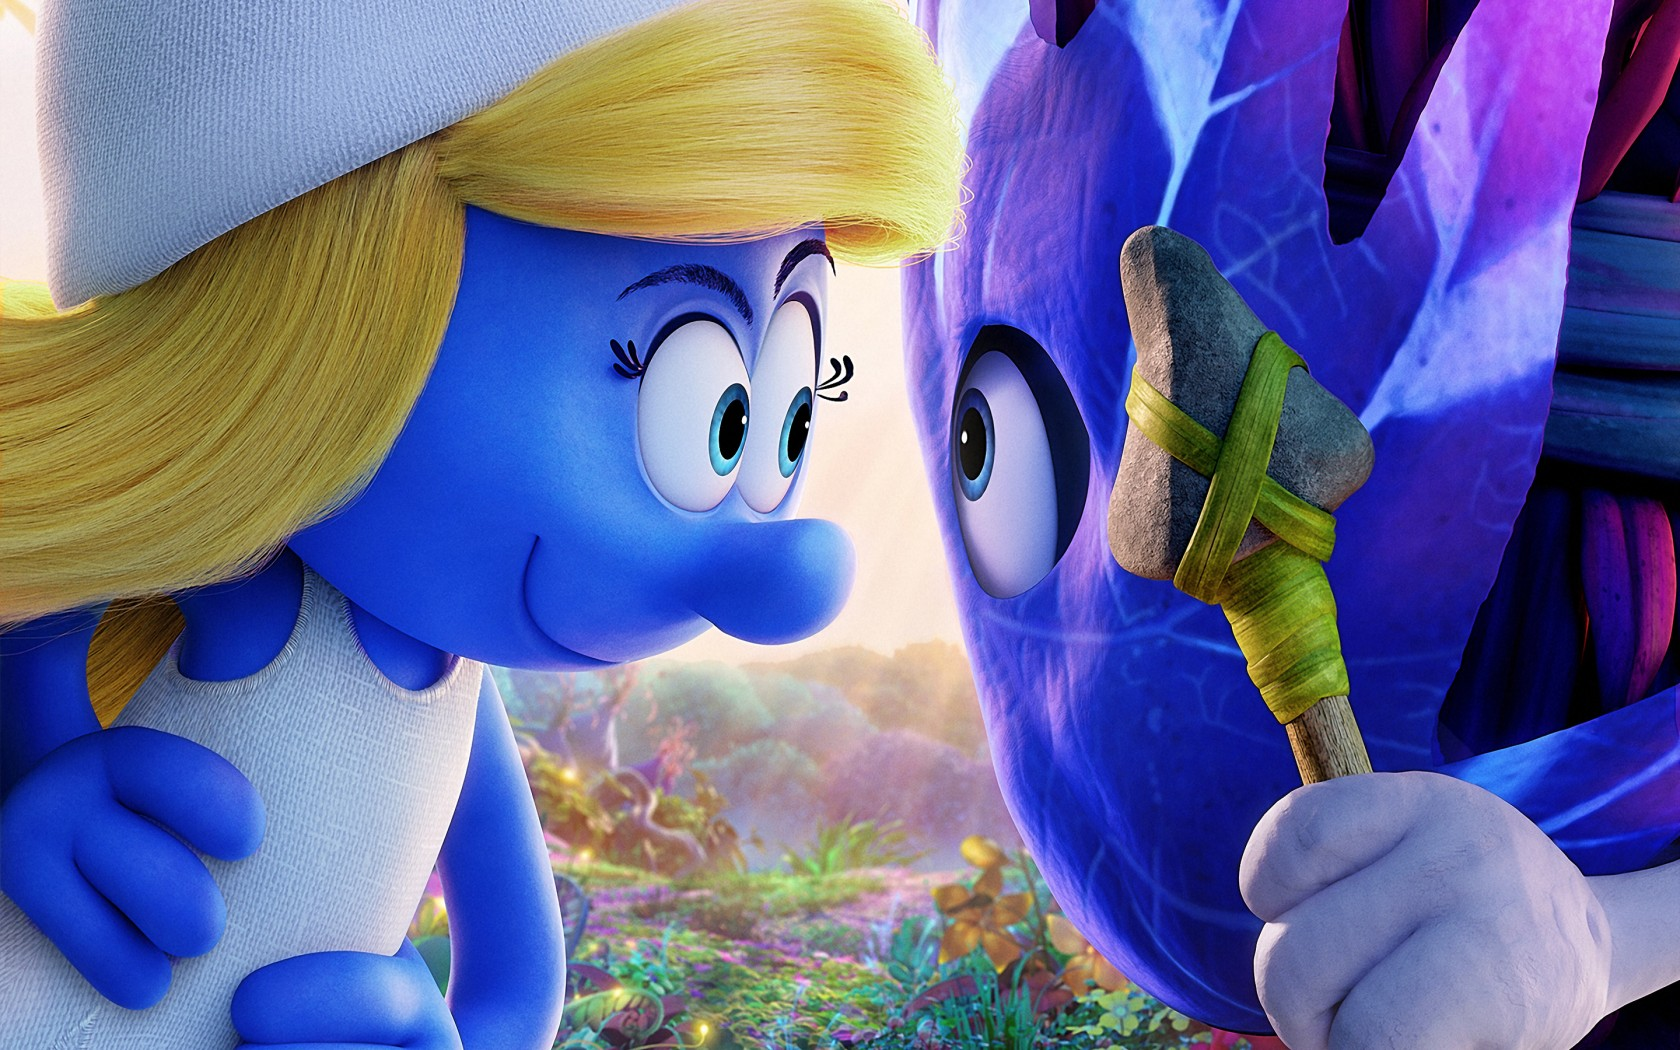 3d Smurfette Wallpapers The Smurfs 2 Wallpapers High Quality ...